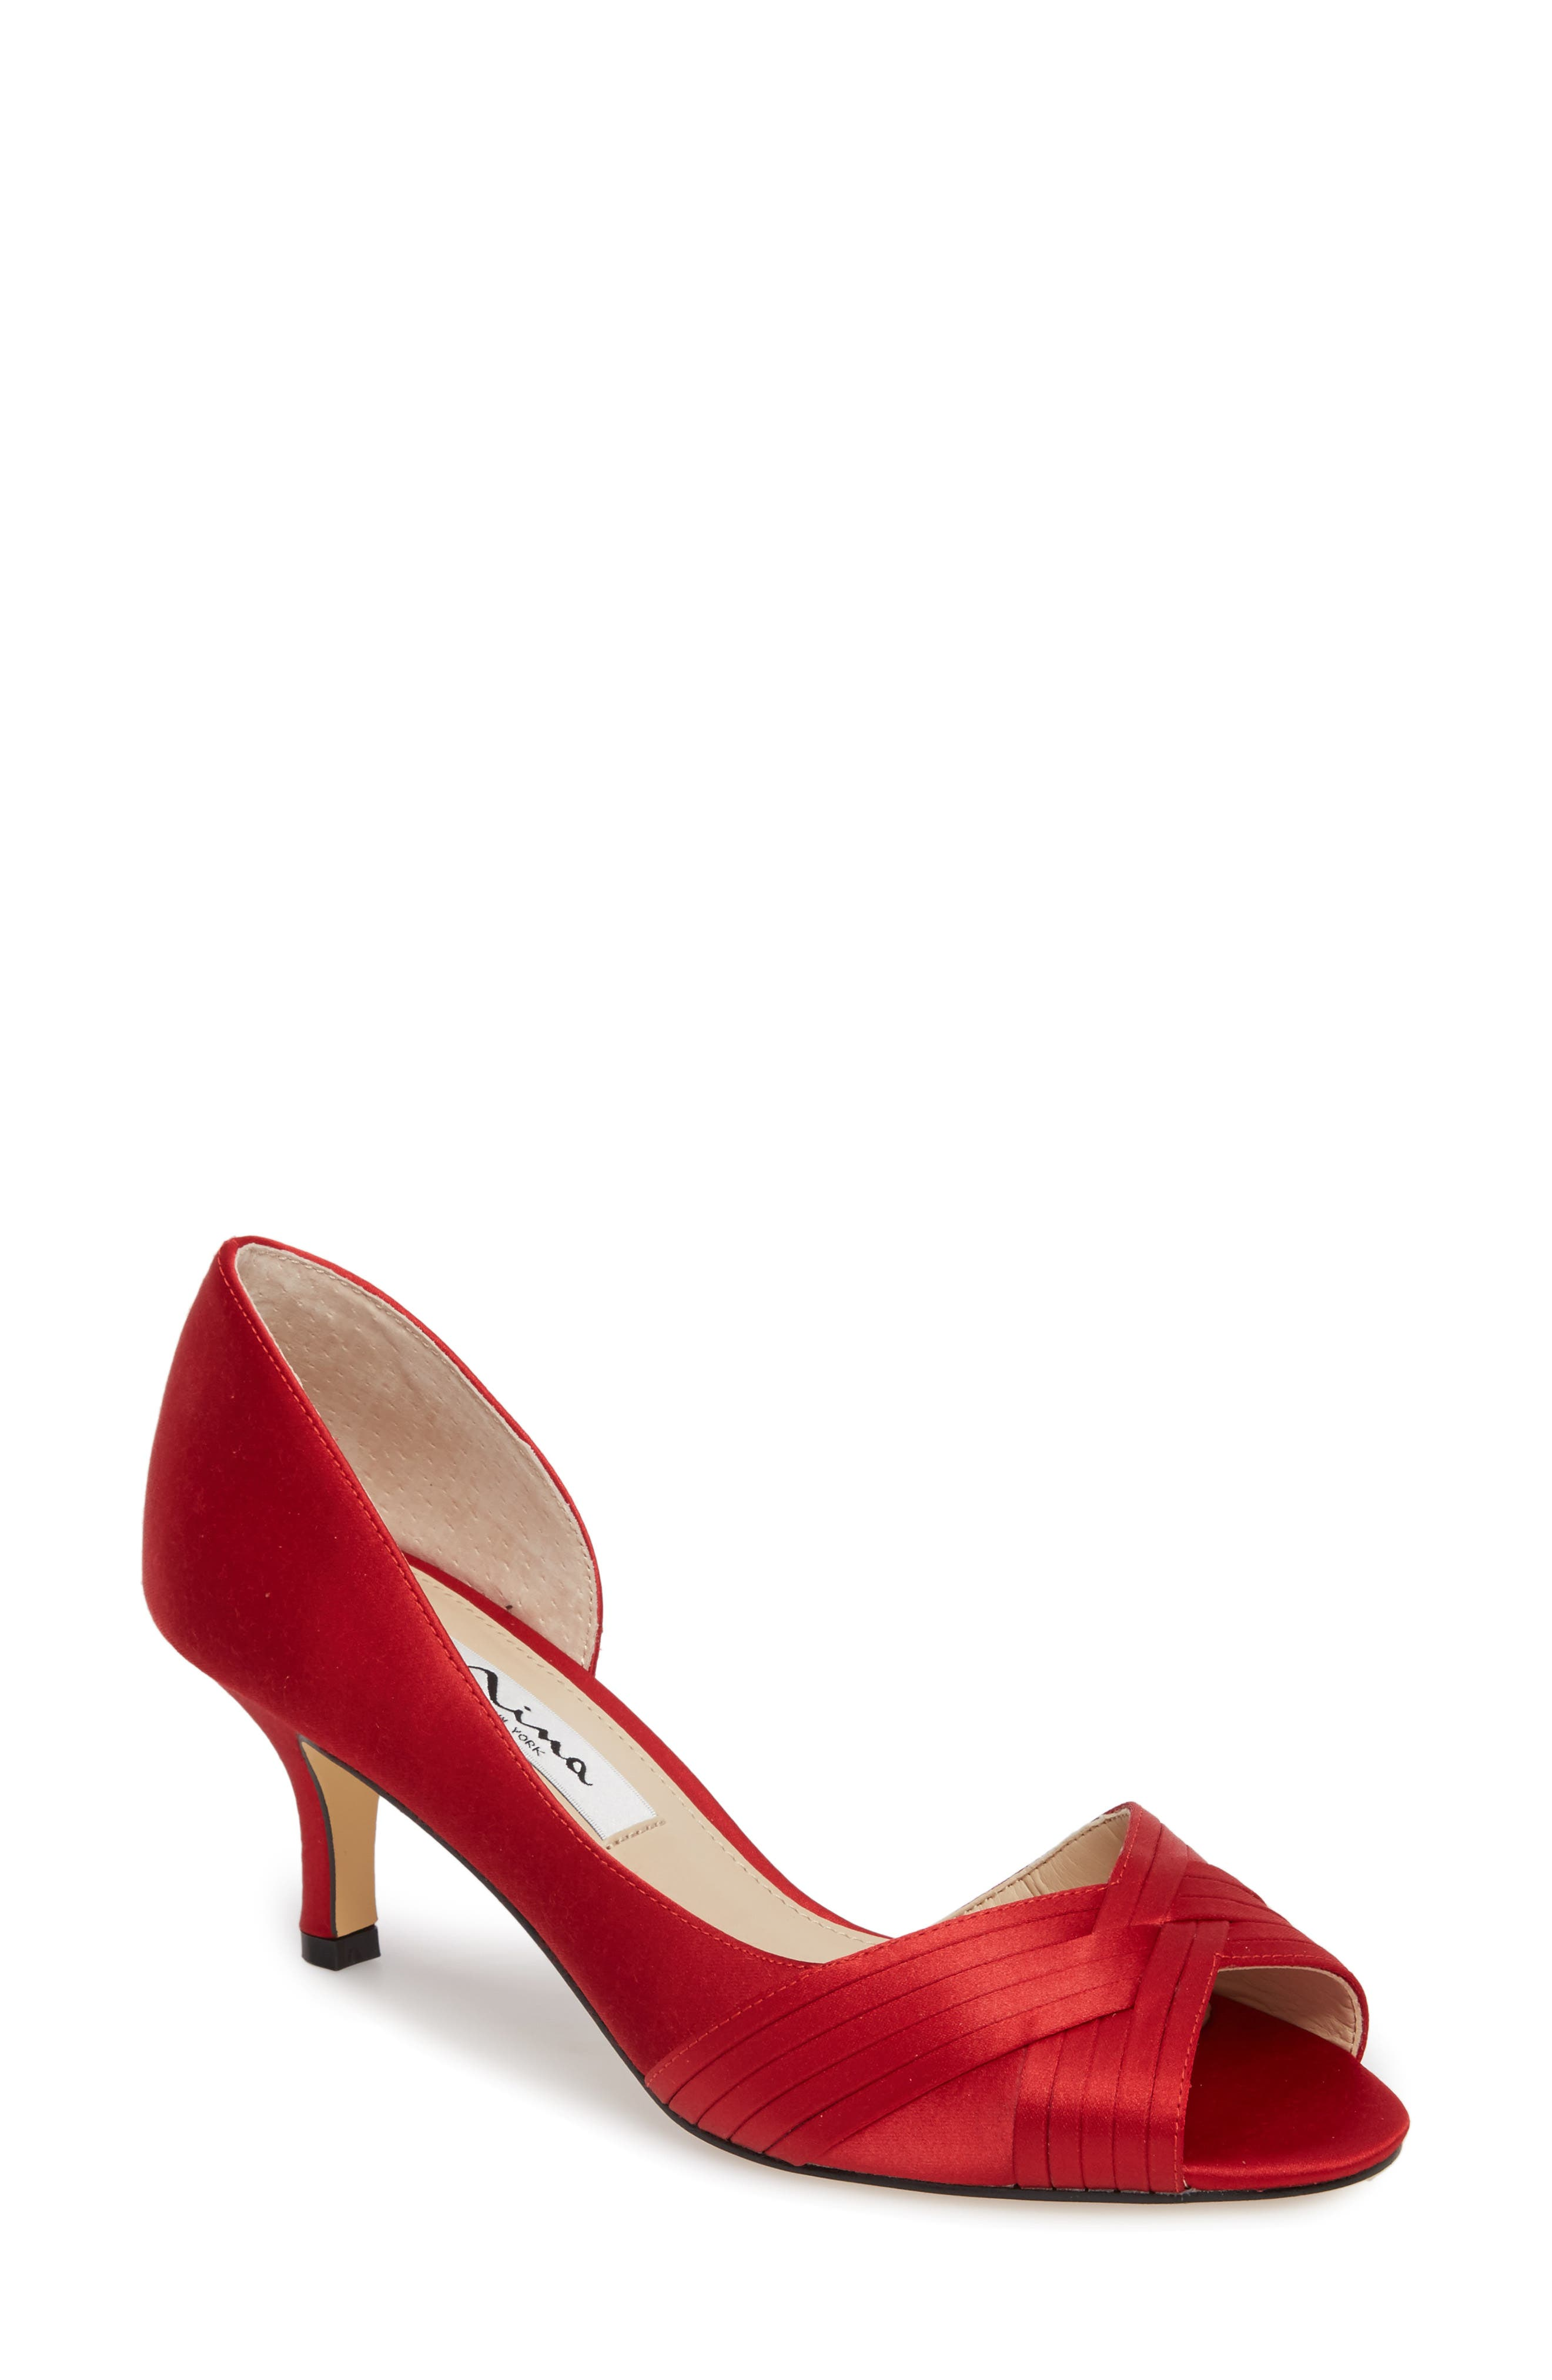 Contesa Open Toe Pump,                         Main,                         color, RED SATIN